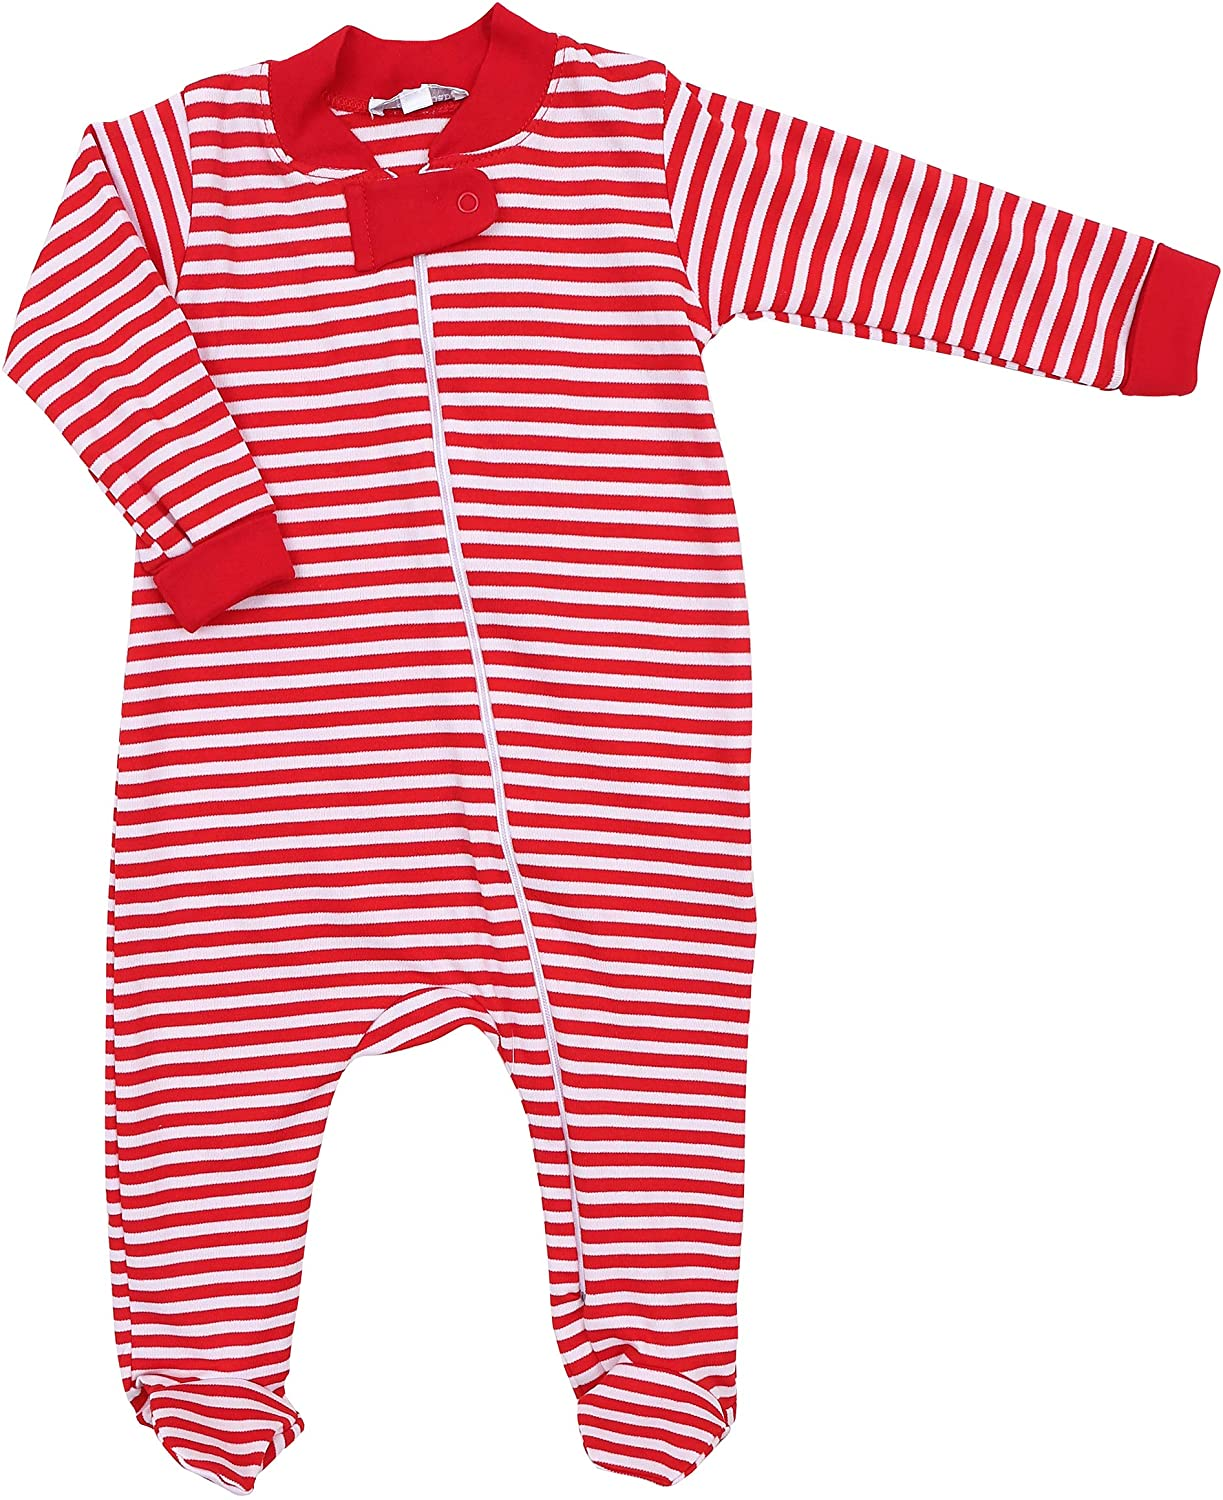 Magnolia Baby Unisex Baby Fall Striped Essentials Zipped Footie Red